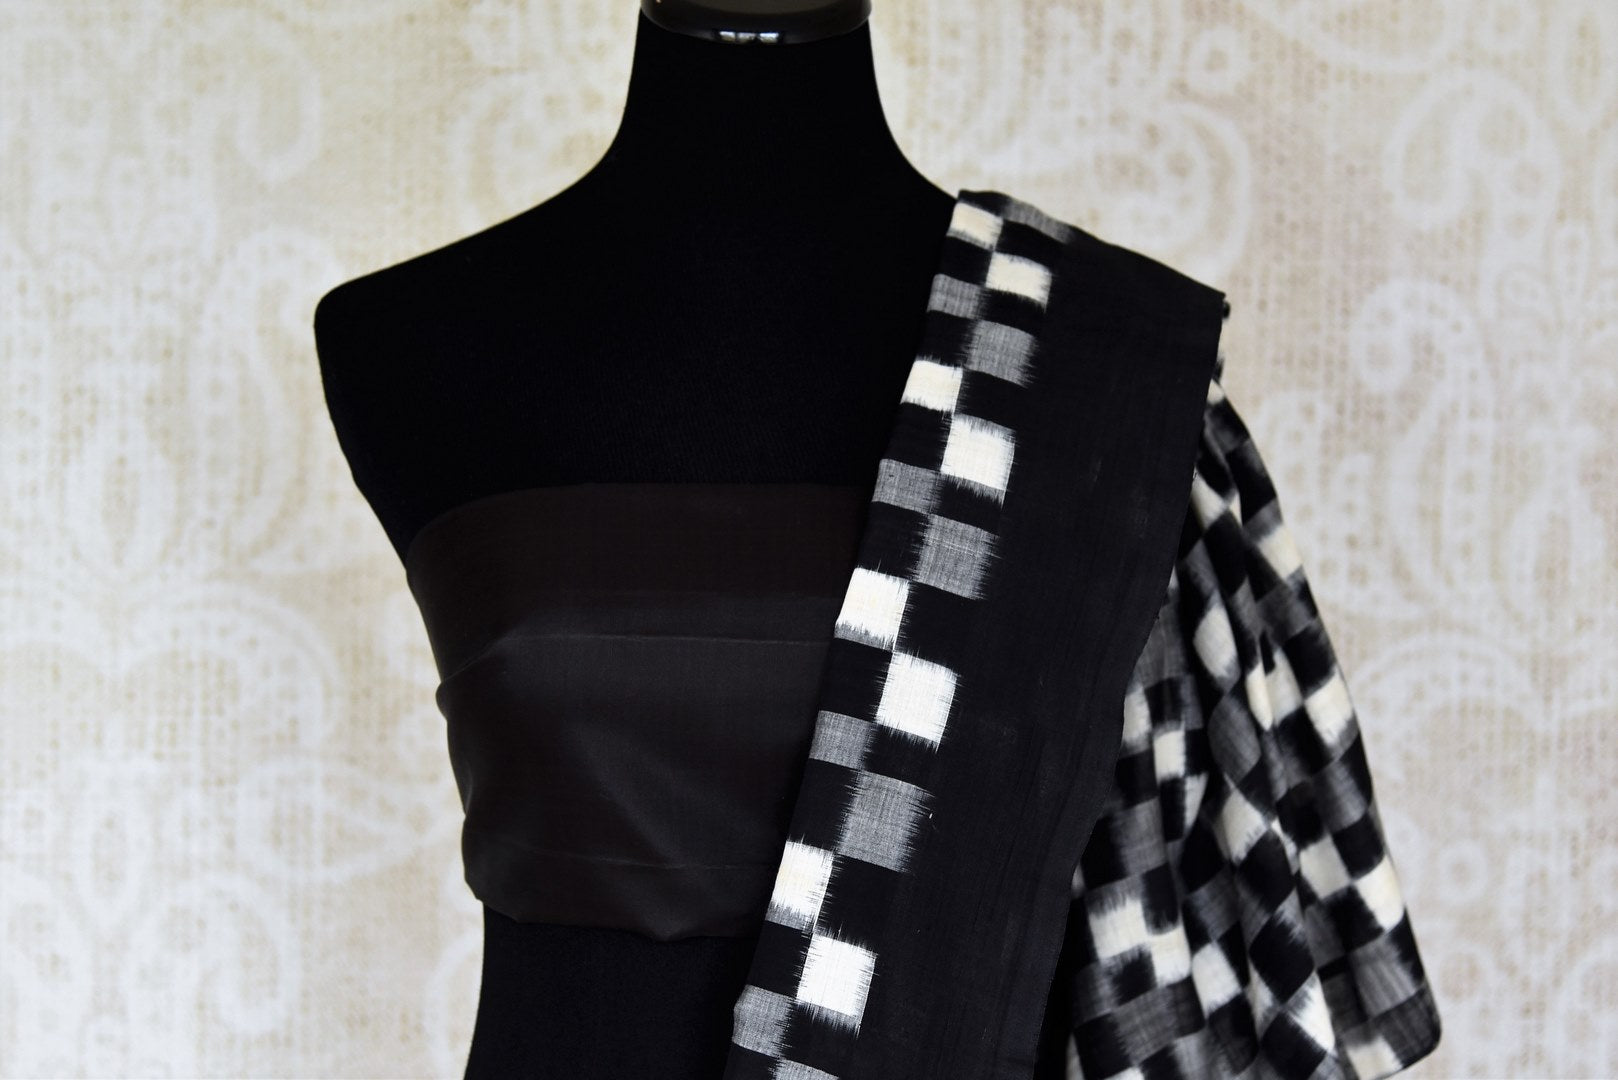 Shop black grey and white square ikkat cotton saree online in USA. Shop more such exquisite Indian handloom saris in USA from Pure Elegance. Get floored by a range of designer sarees, pure silk sarees, Kanchipuram silk saris at our Indian fashion store in USA.-blouse pallu